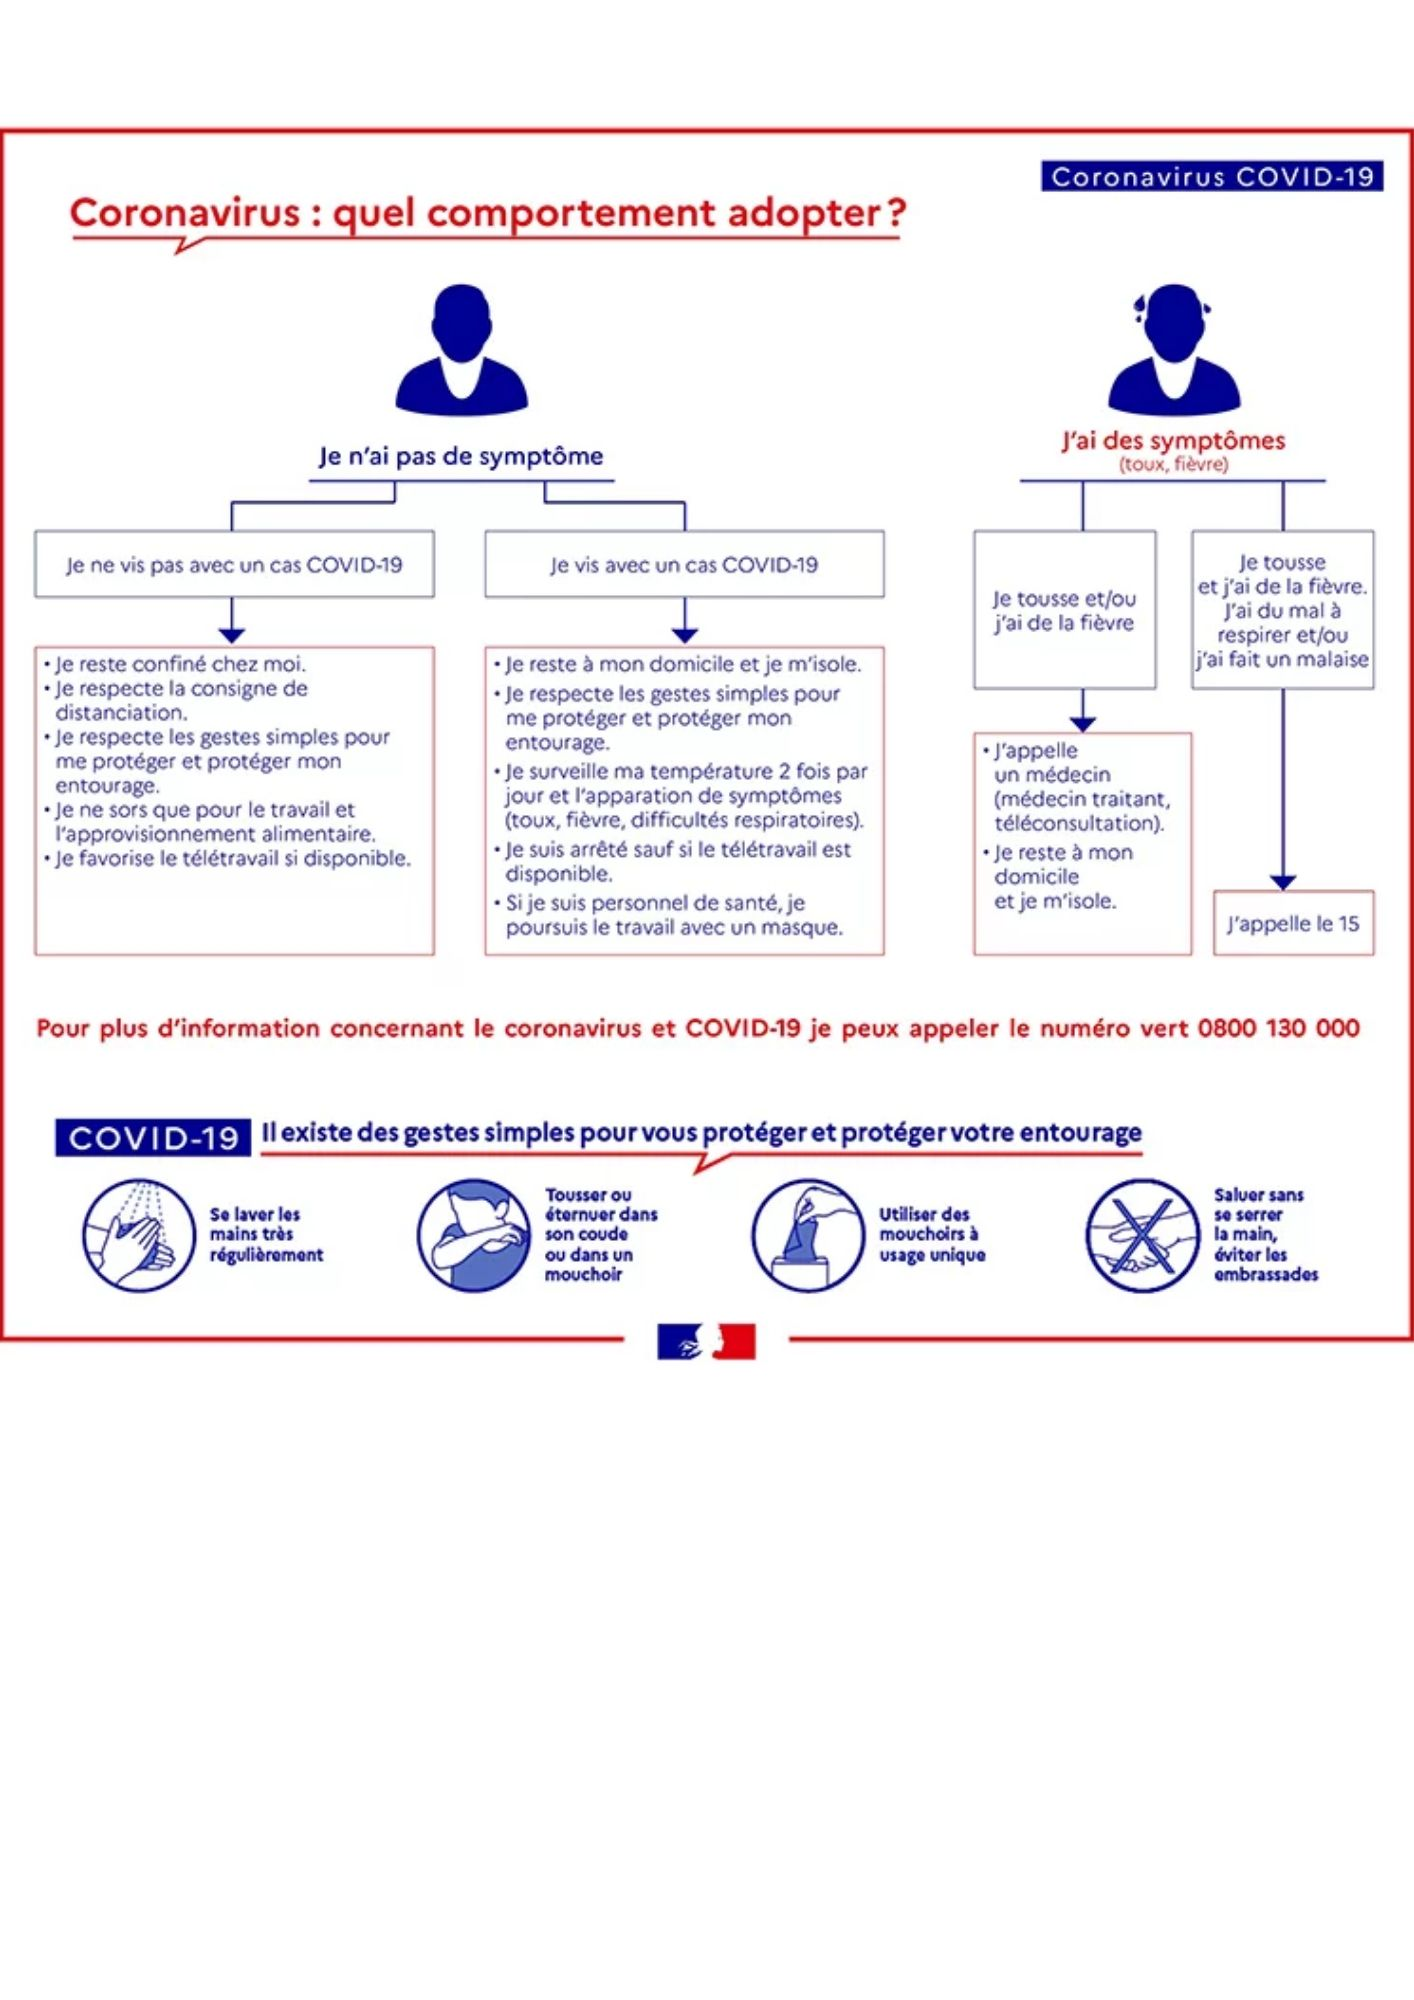 cpts à adopter